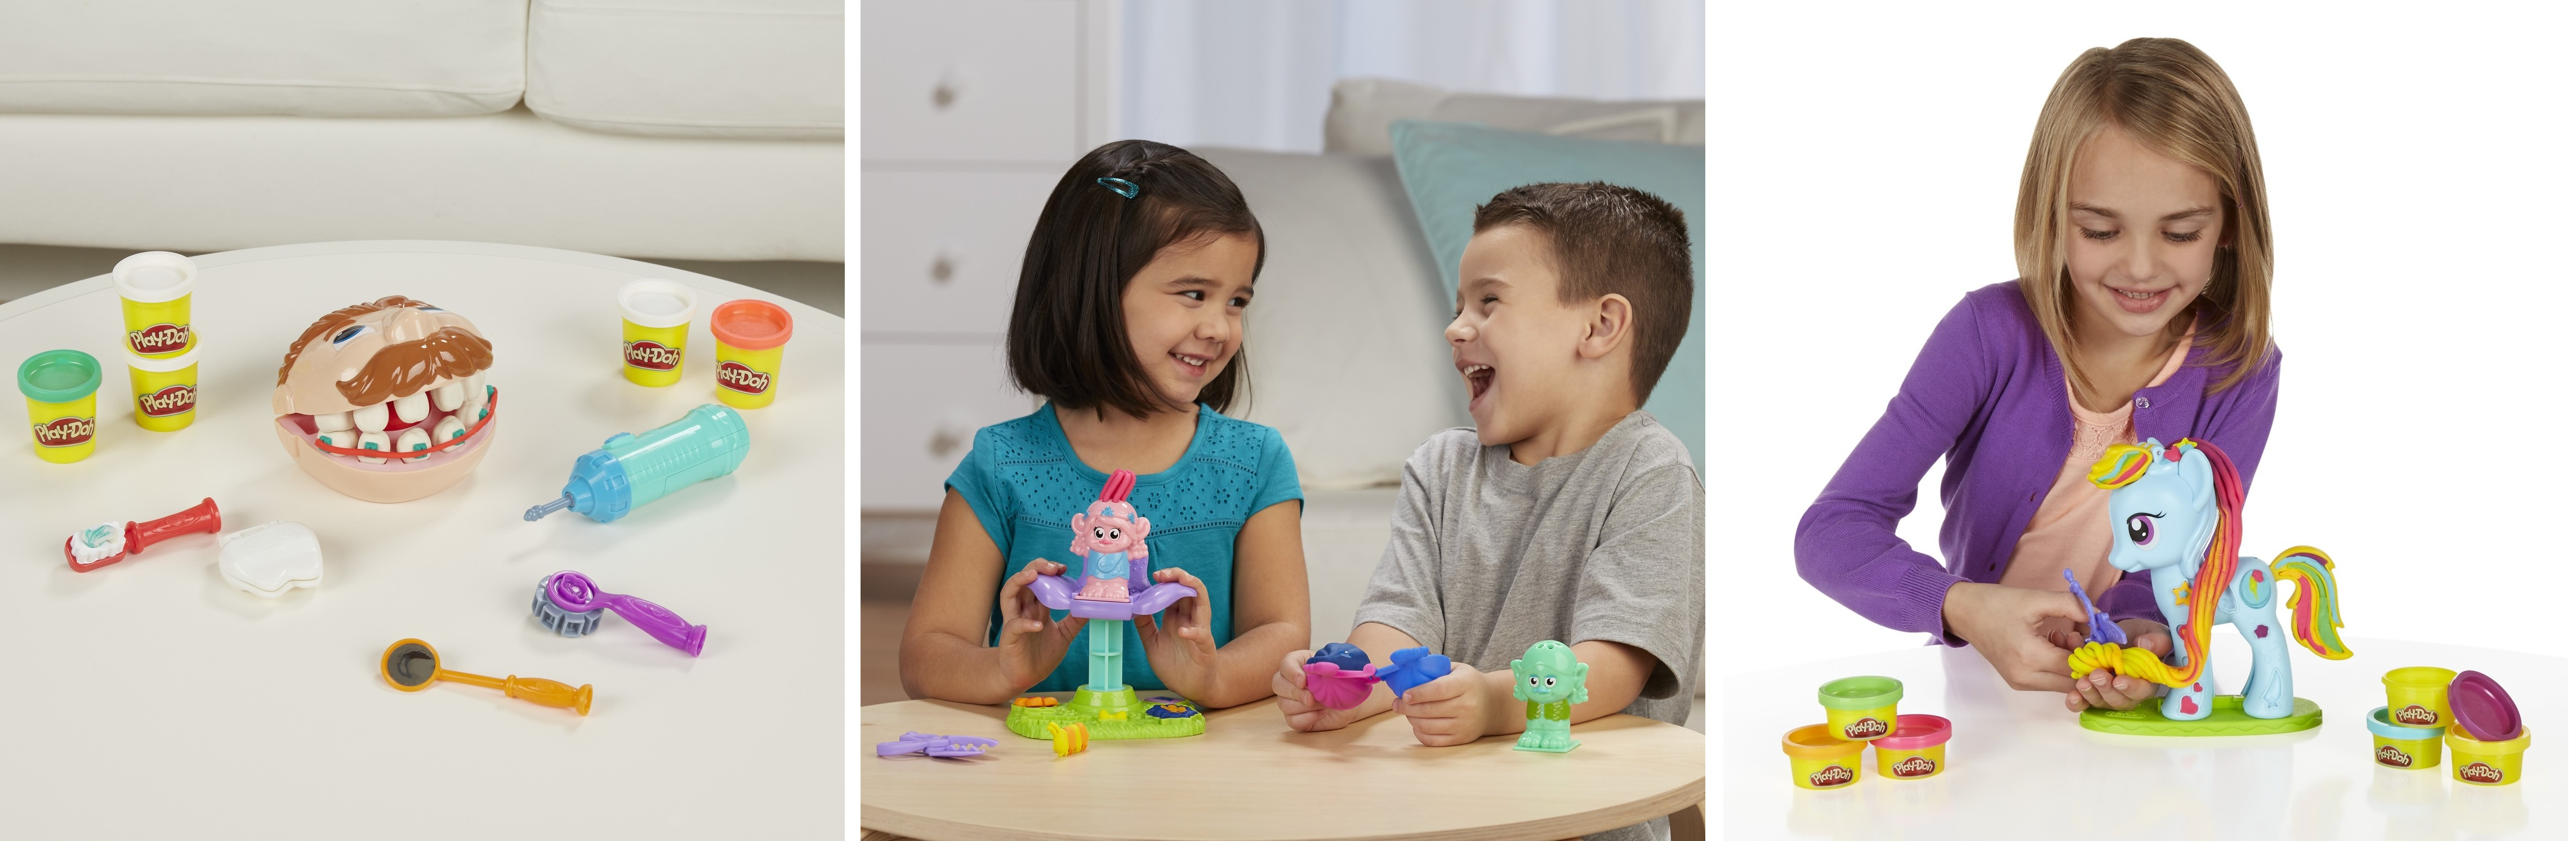 B5520AS00 DAD_PD_DrDrillnFill_Life_4465_Large_300DPI